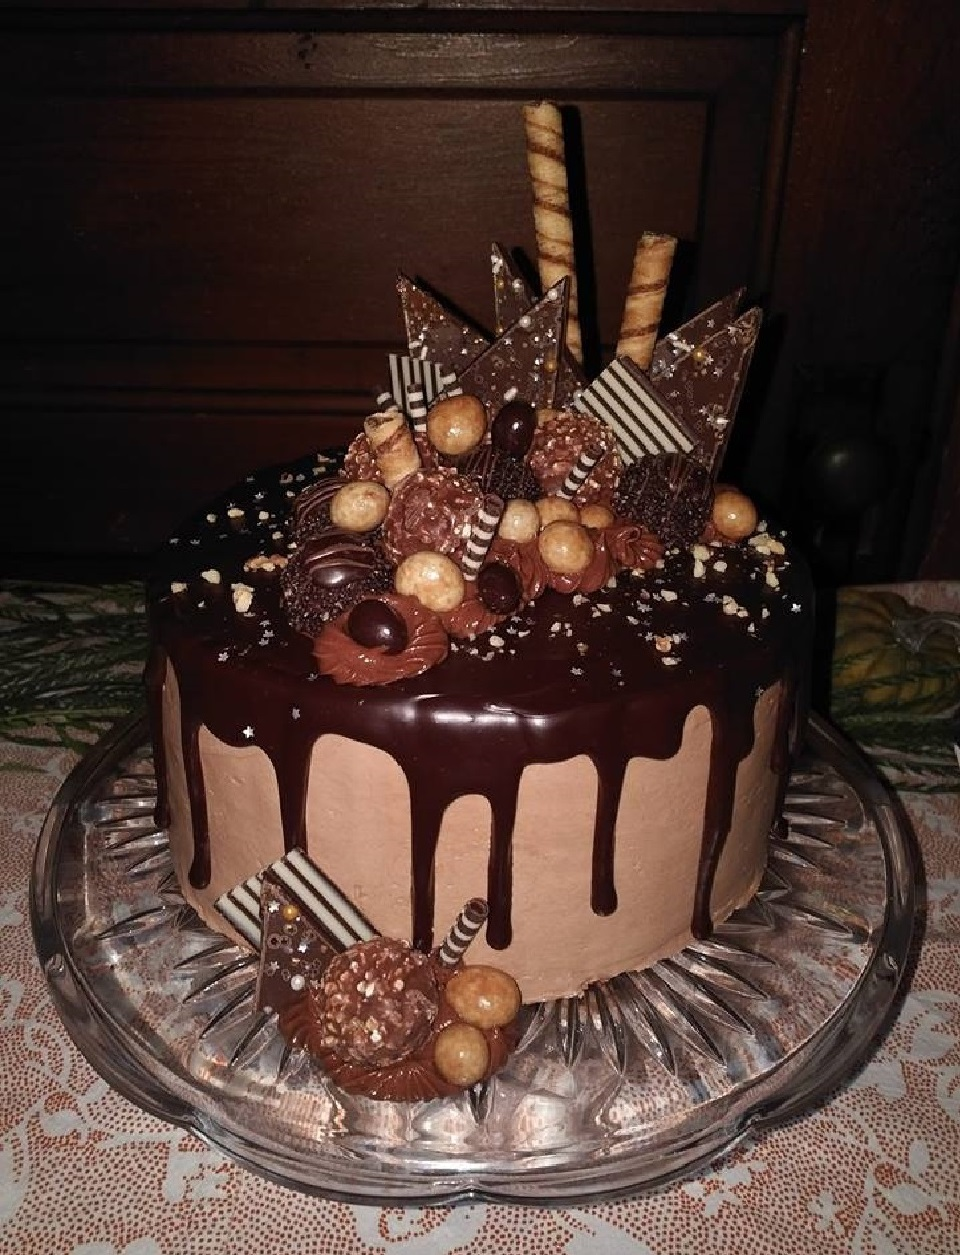 Nutella® Chocolate Cake